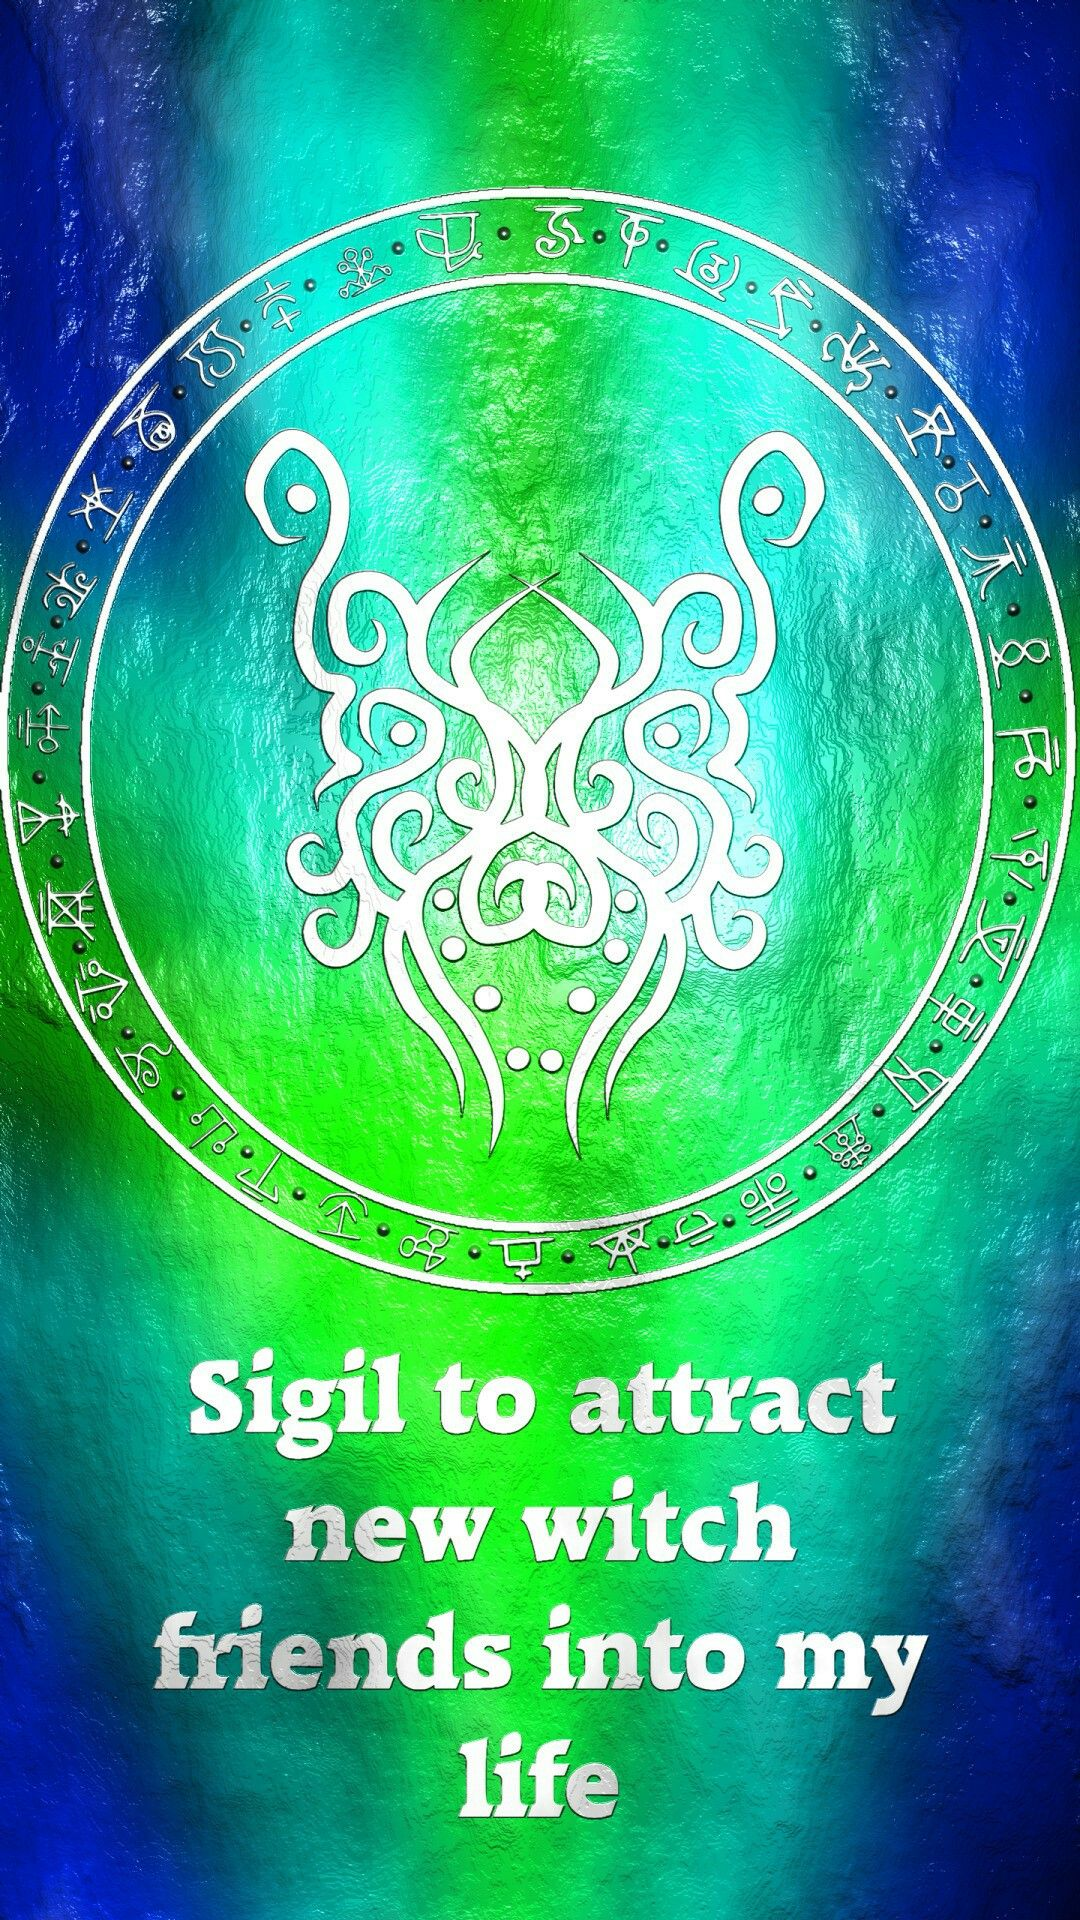 To attract new witch friends into my life | craft magic words ...